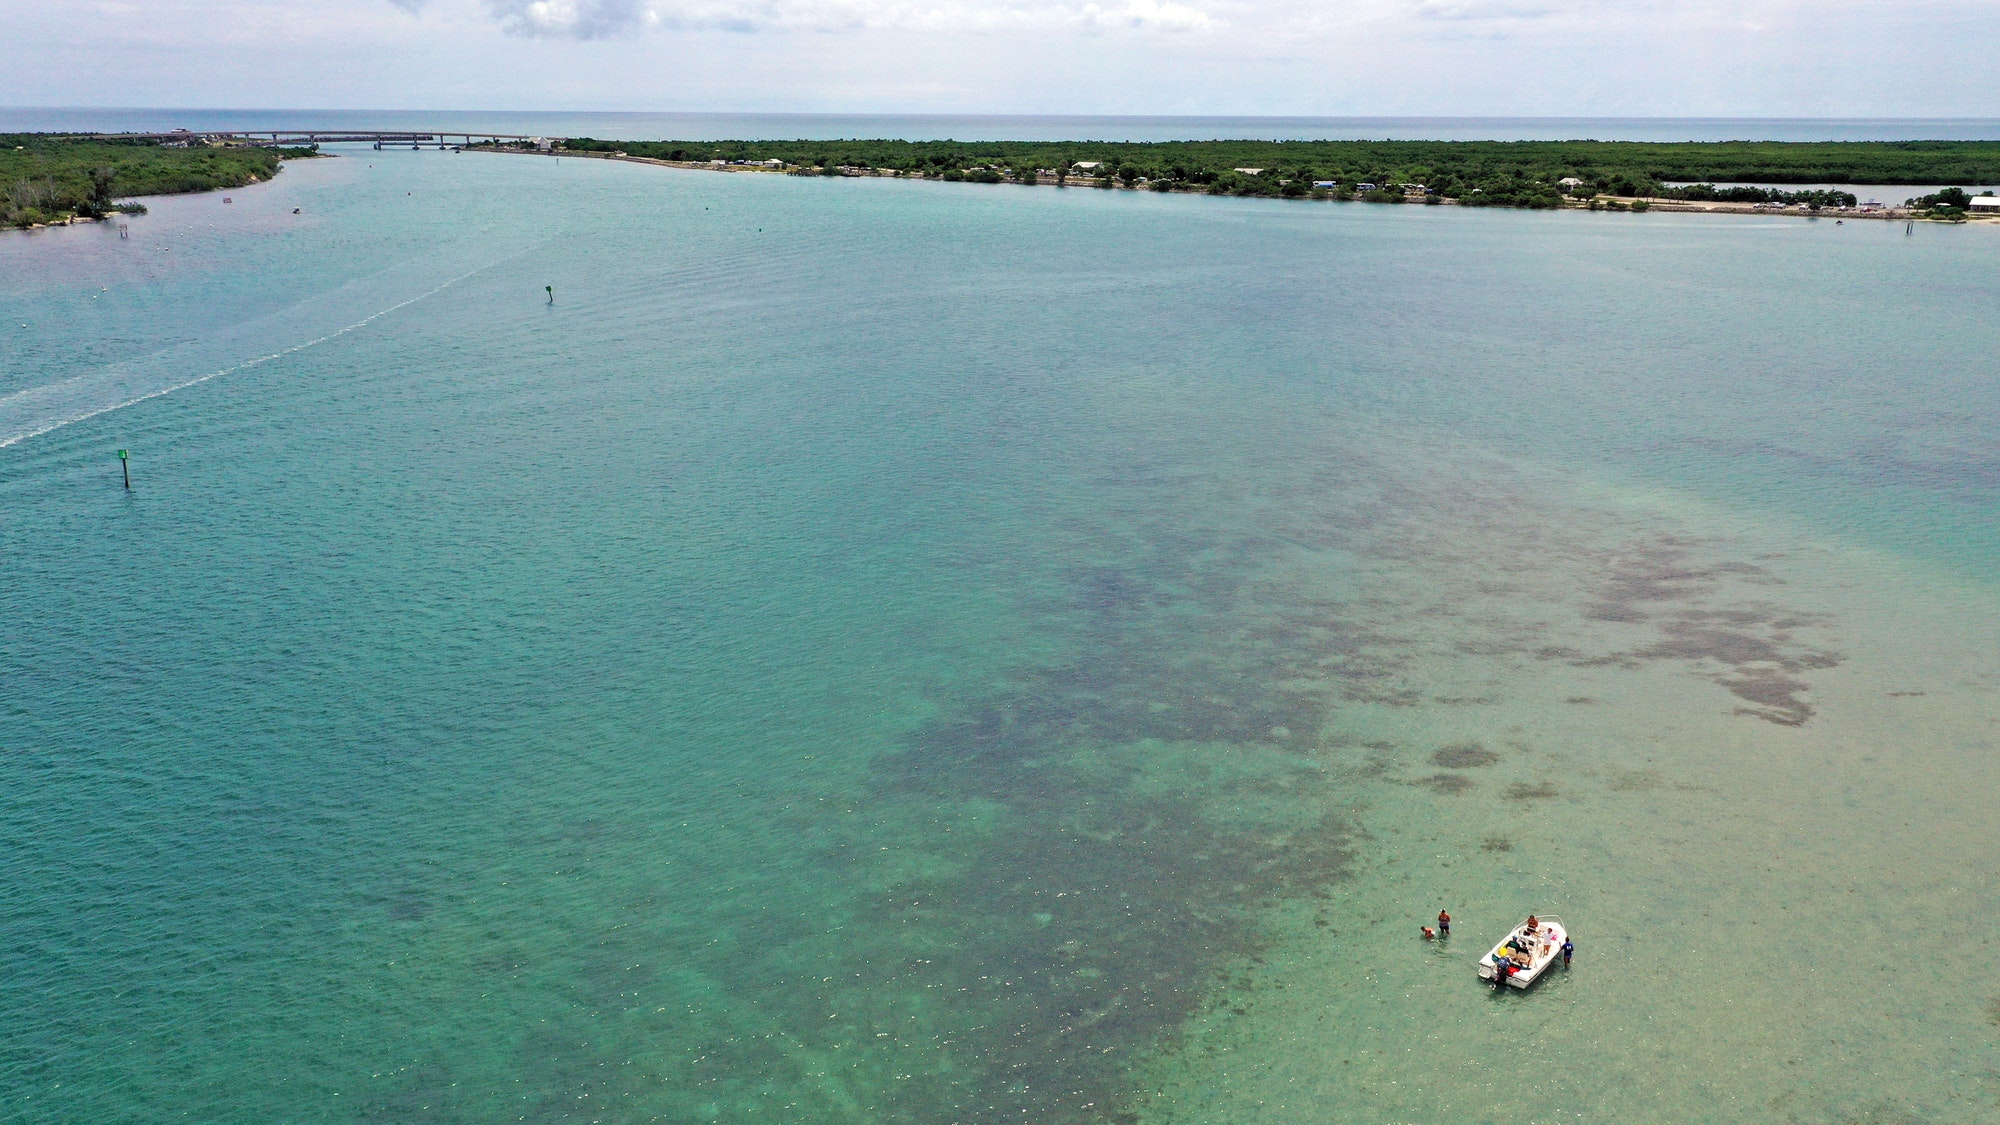 aerial image of flood shoal West of Sebastian Inlet with one boat on sandbar